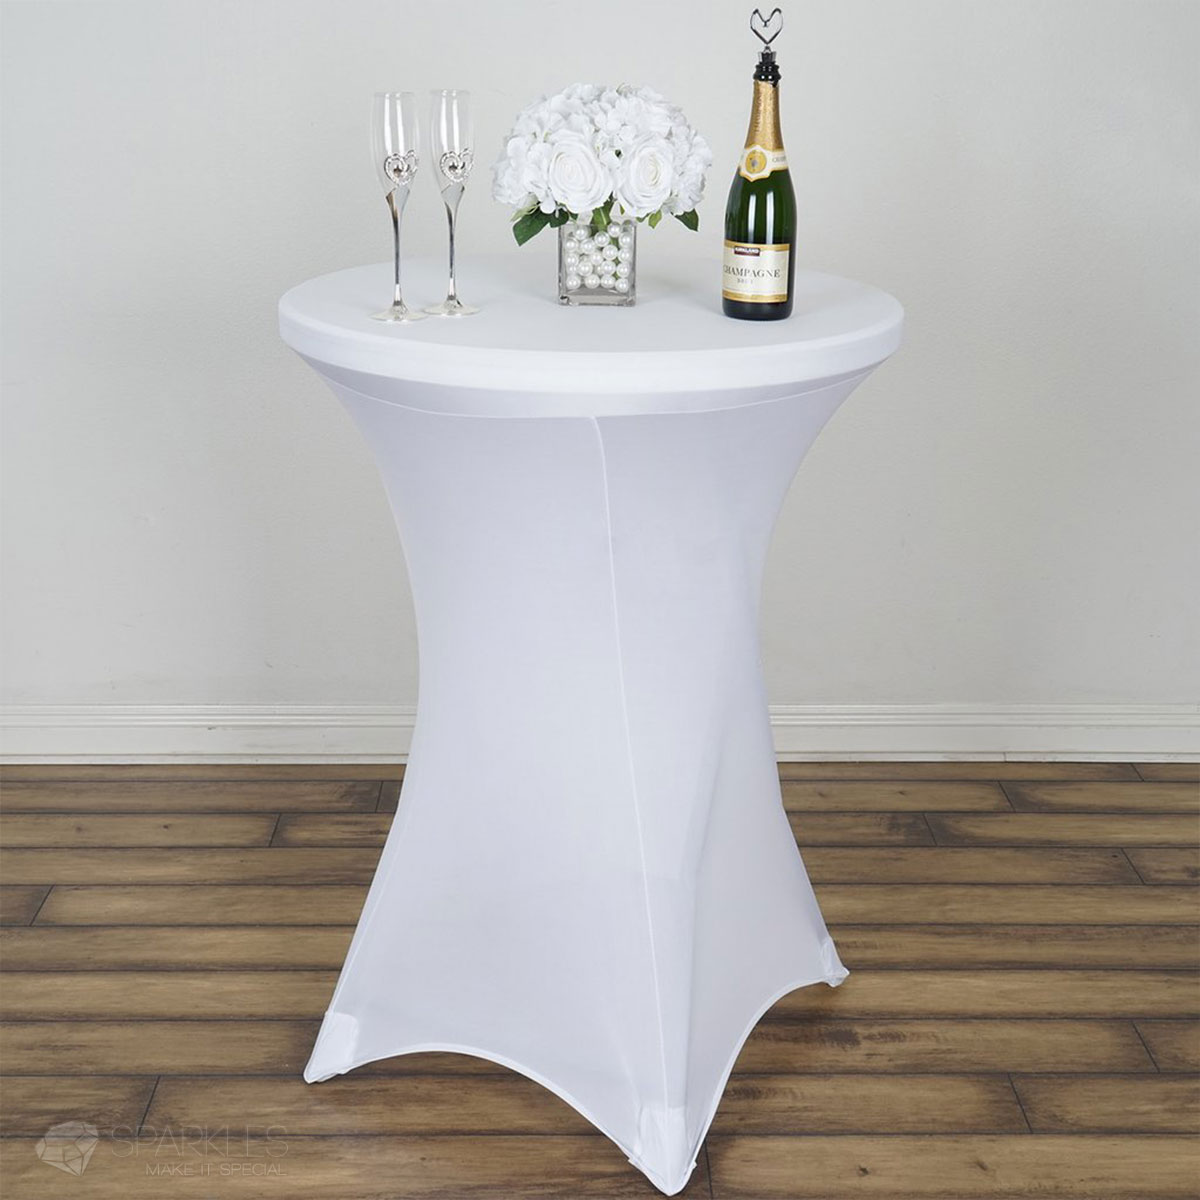 1 Pc 30 Tail Table Round Ed Spandex Tablecloth White X Base